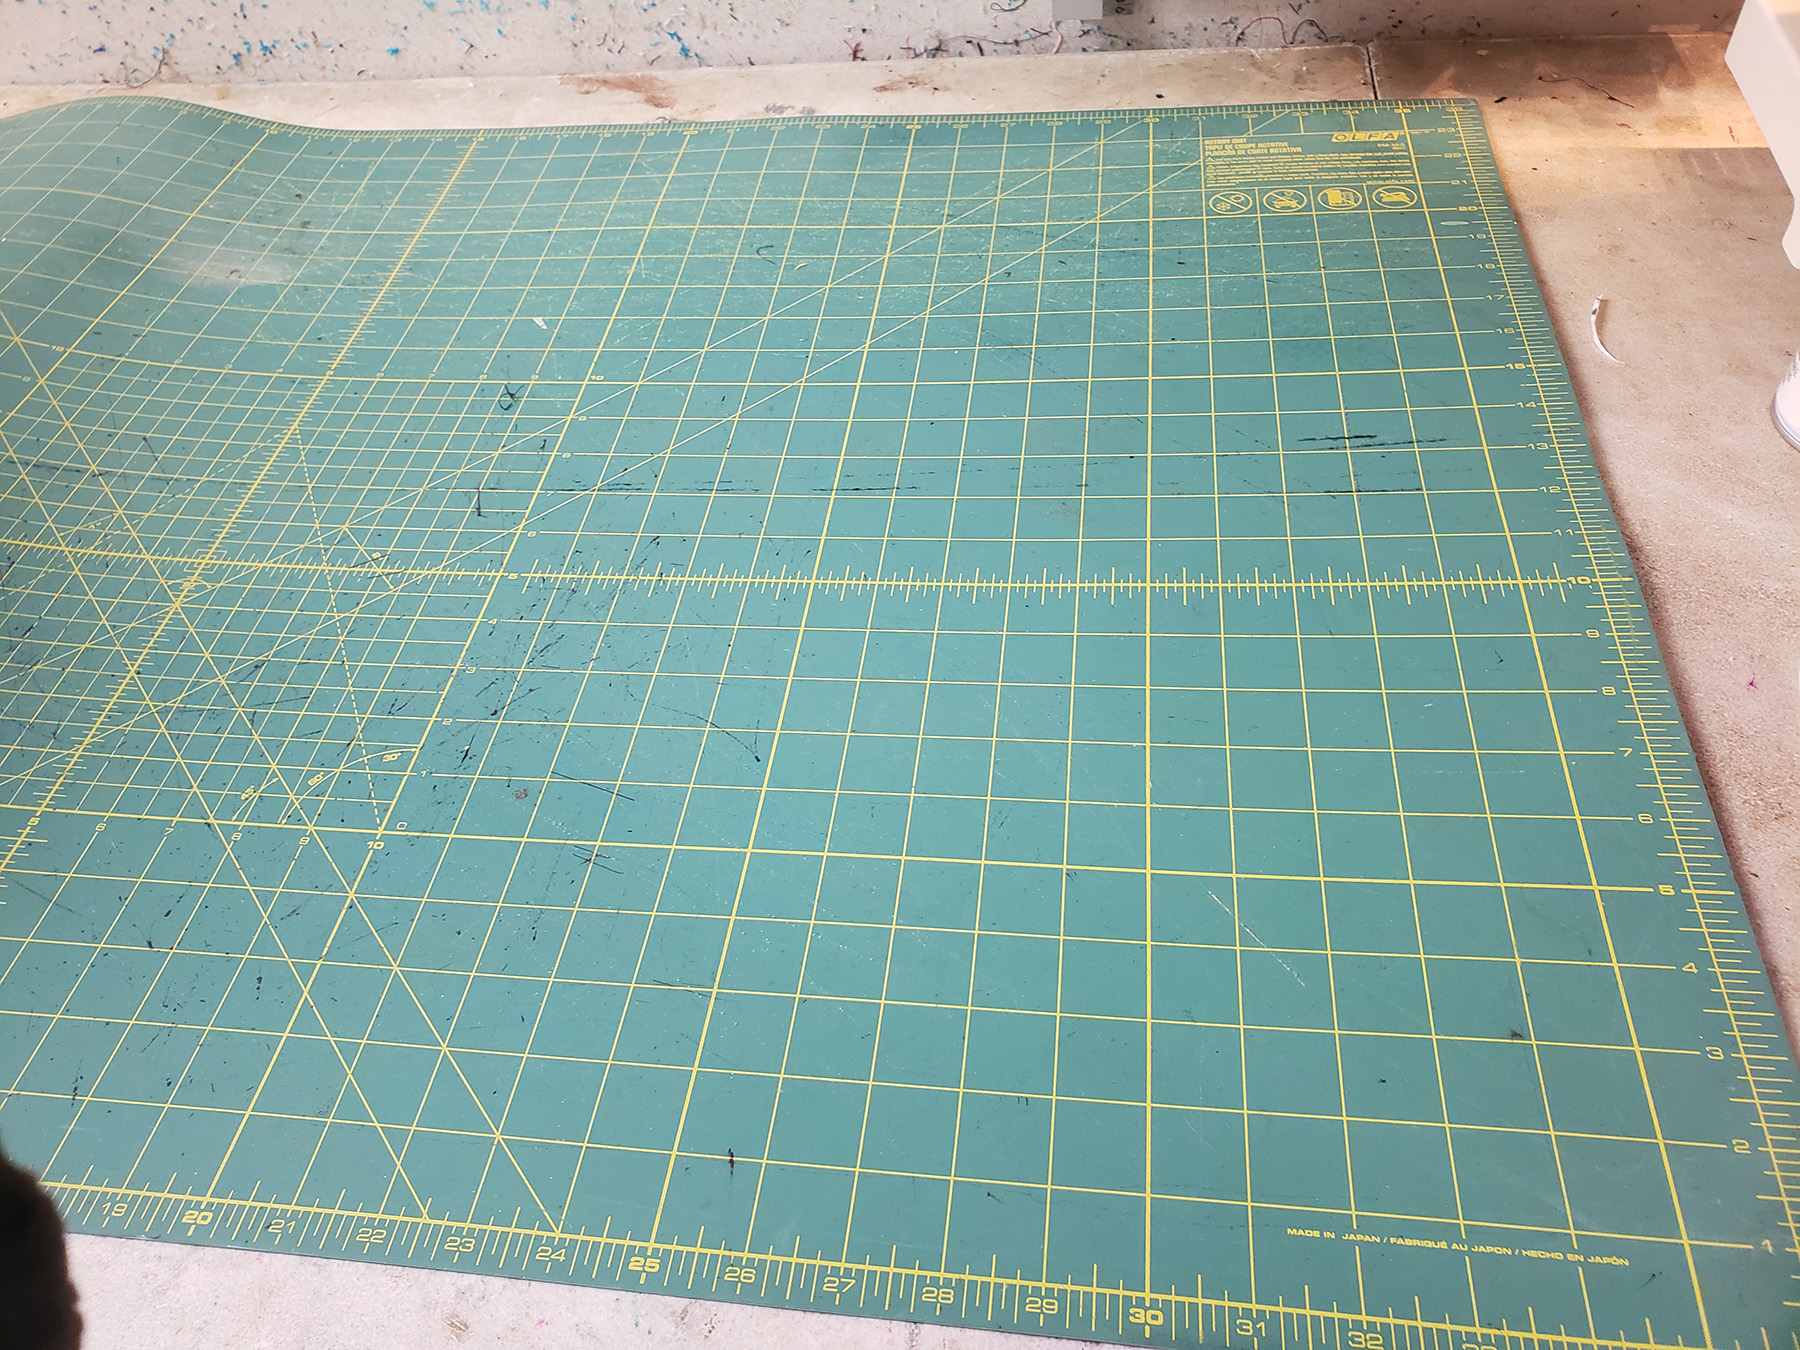 A large green cutting mat with yellow grid lines.